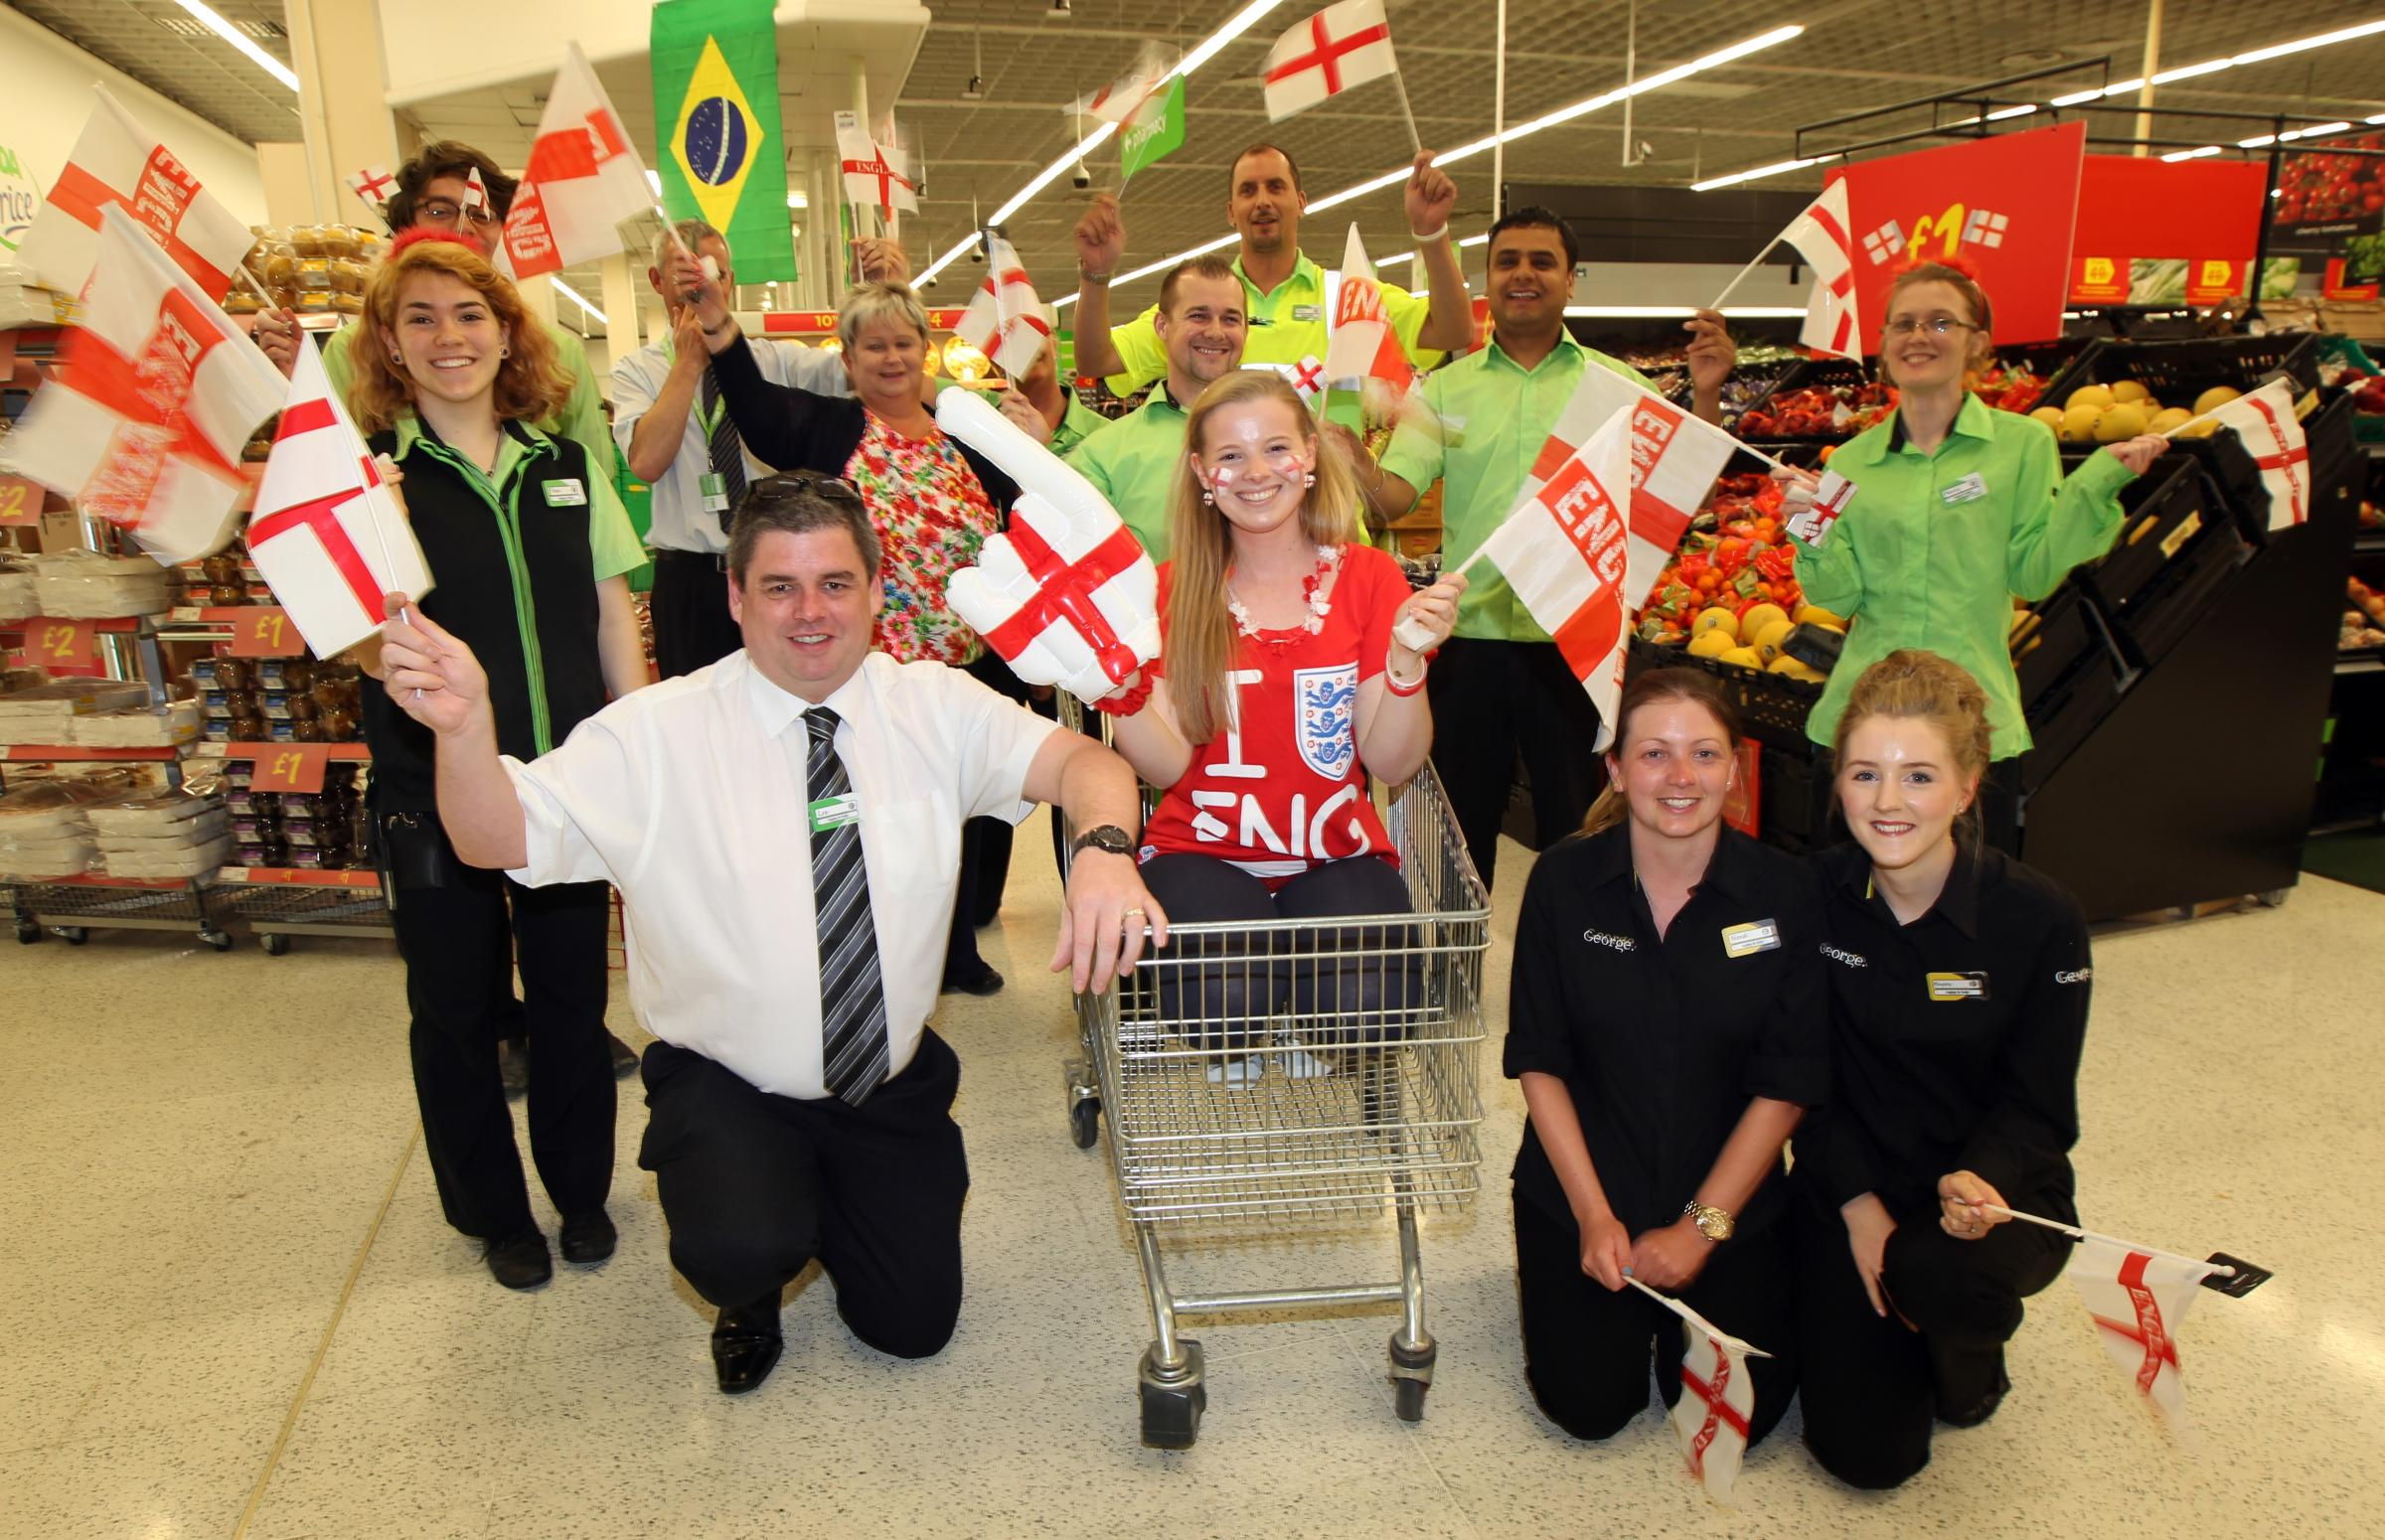 The Daily Echo's number one England fan Emily Ford gearing up for the World Cup with Asda staff in Southampton